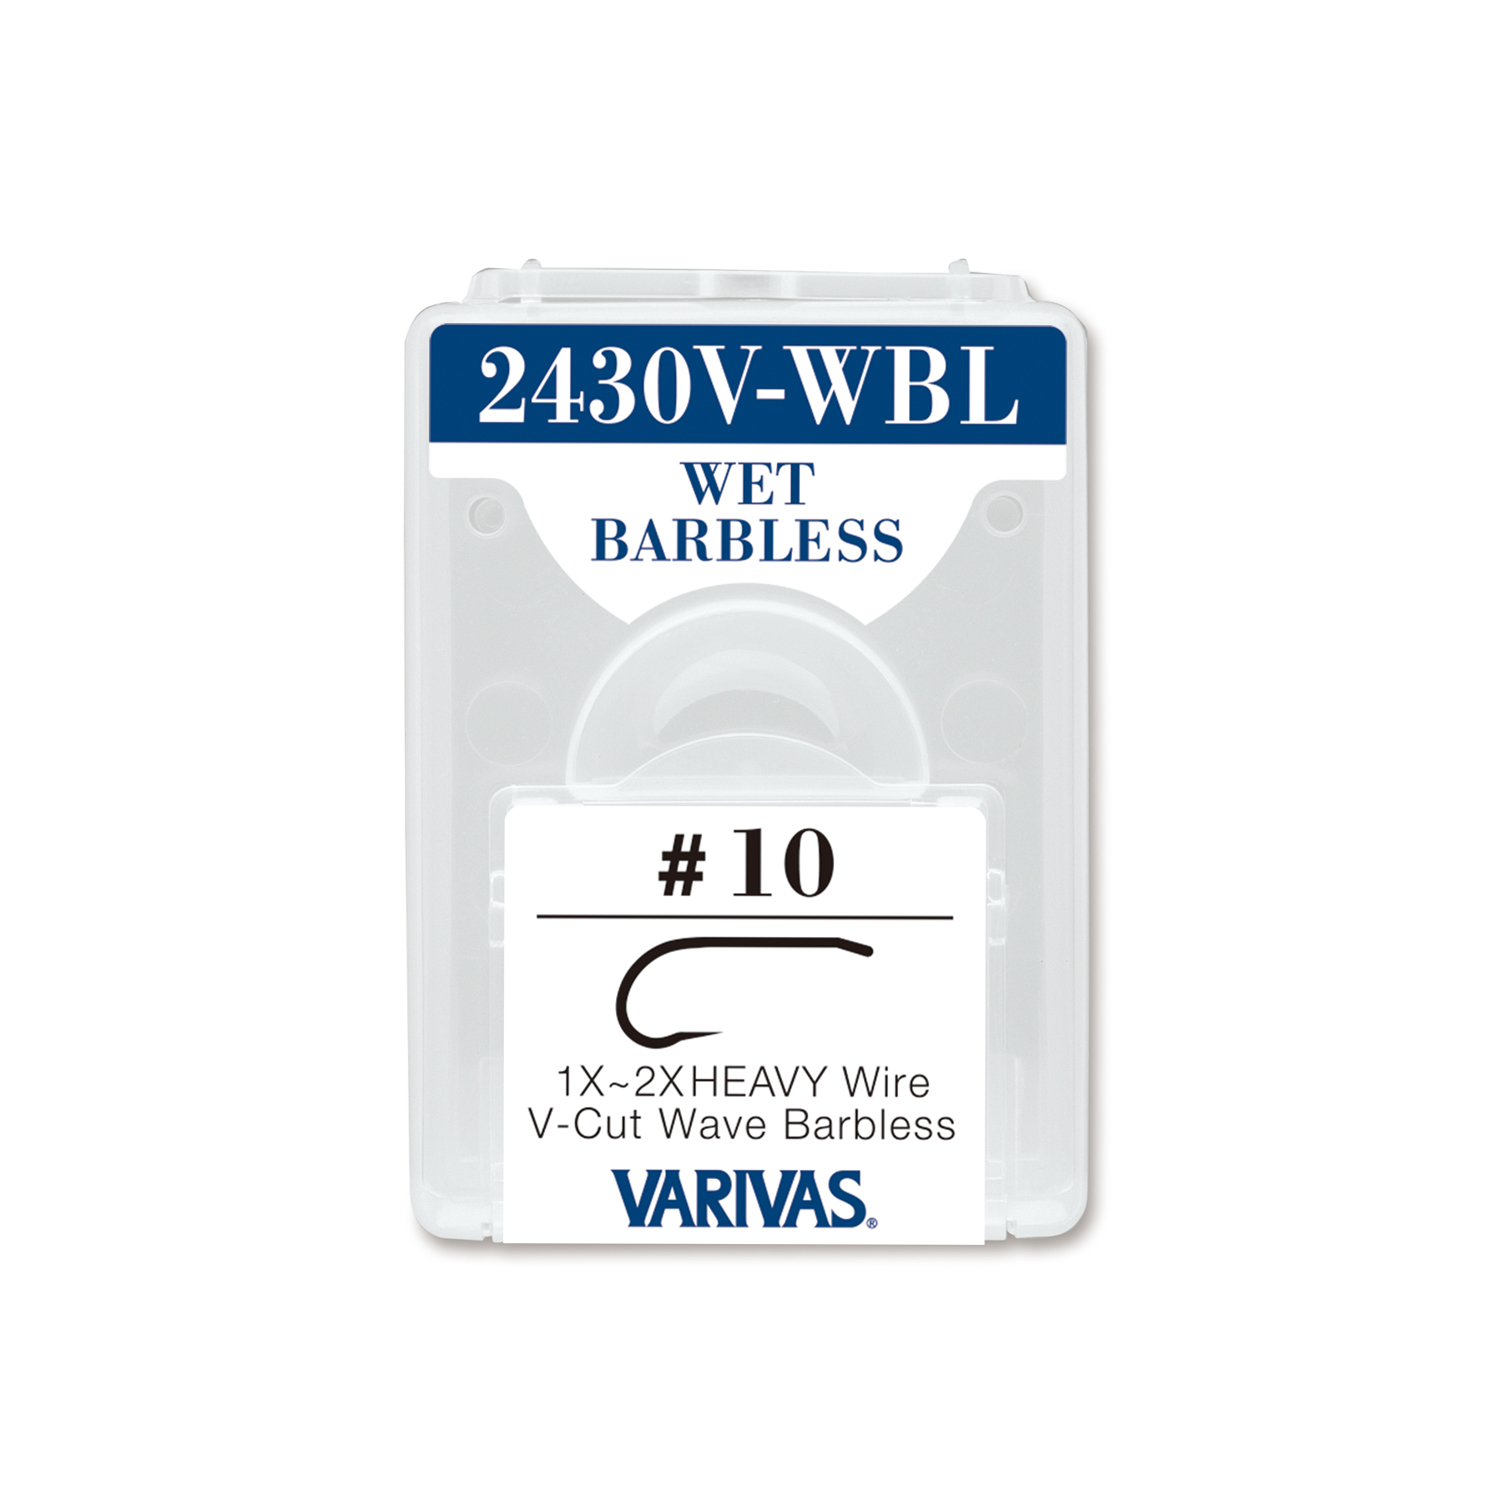 2430V-WBL WET BARBLESS1X~2X Heavy Wire V-Cut Wave Barbless